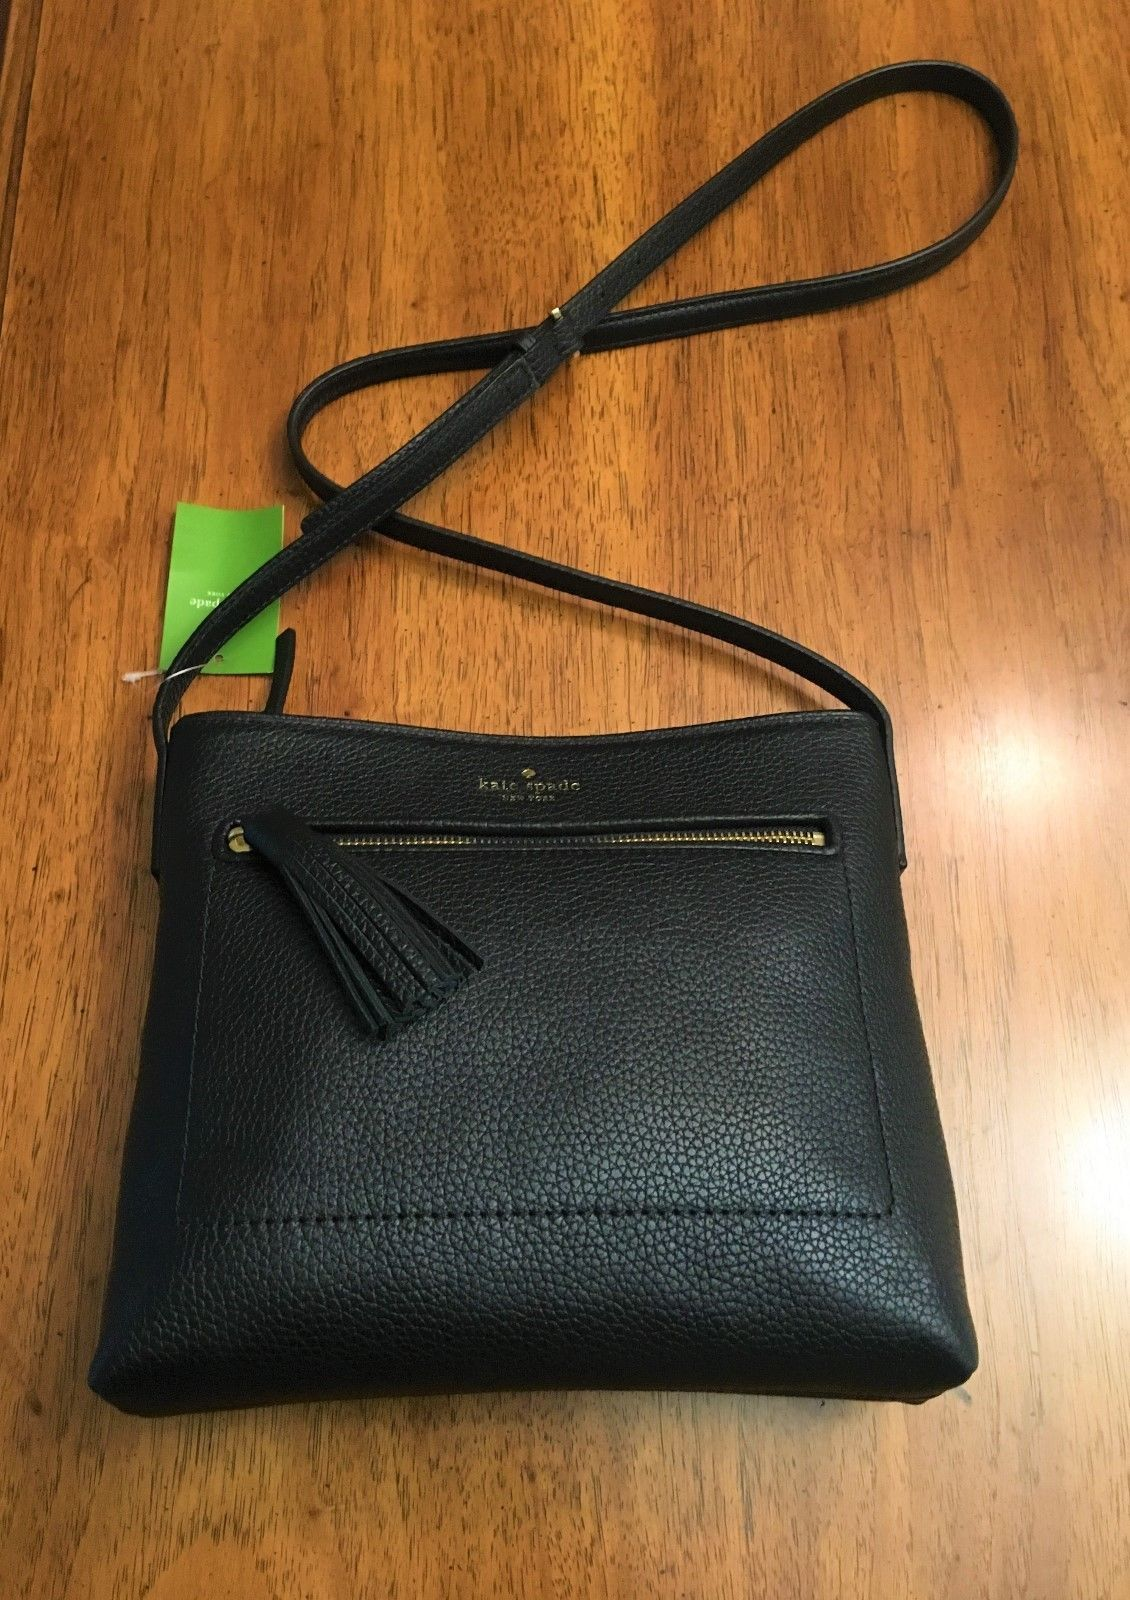 NWT Kate Spade black designer purse - Chester Street WKRU 4073 black leather  NEW 6659768d3f154